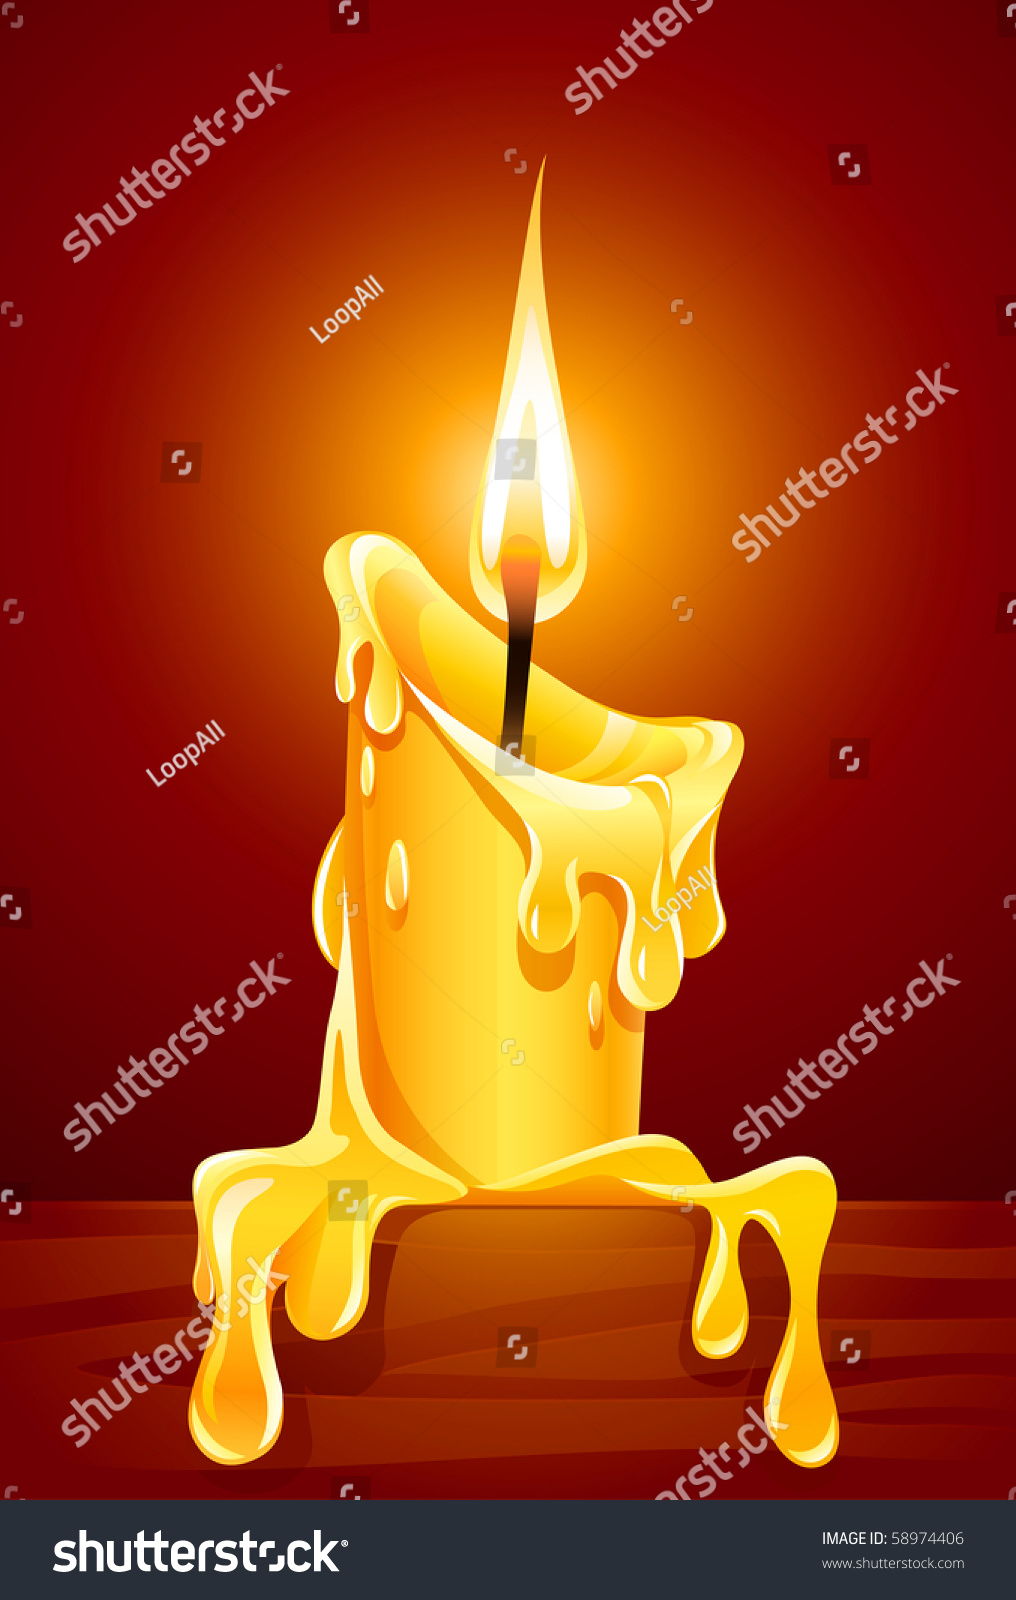 Candle Illustrations Vector Images Candle Illustration Candle Art Drawing Candle Flame Art